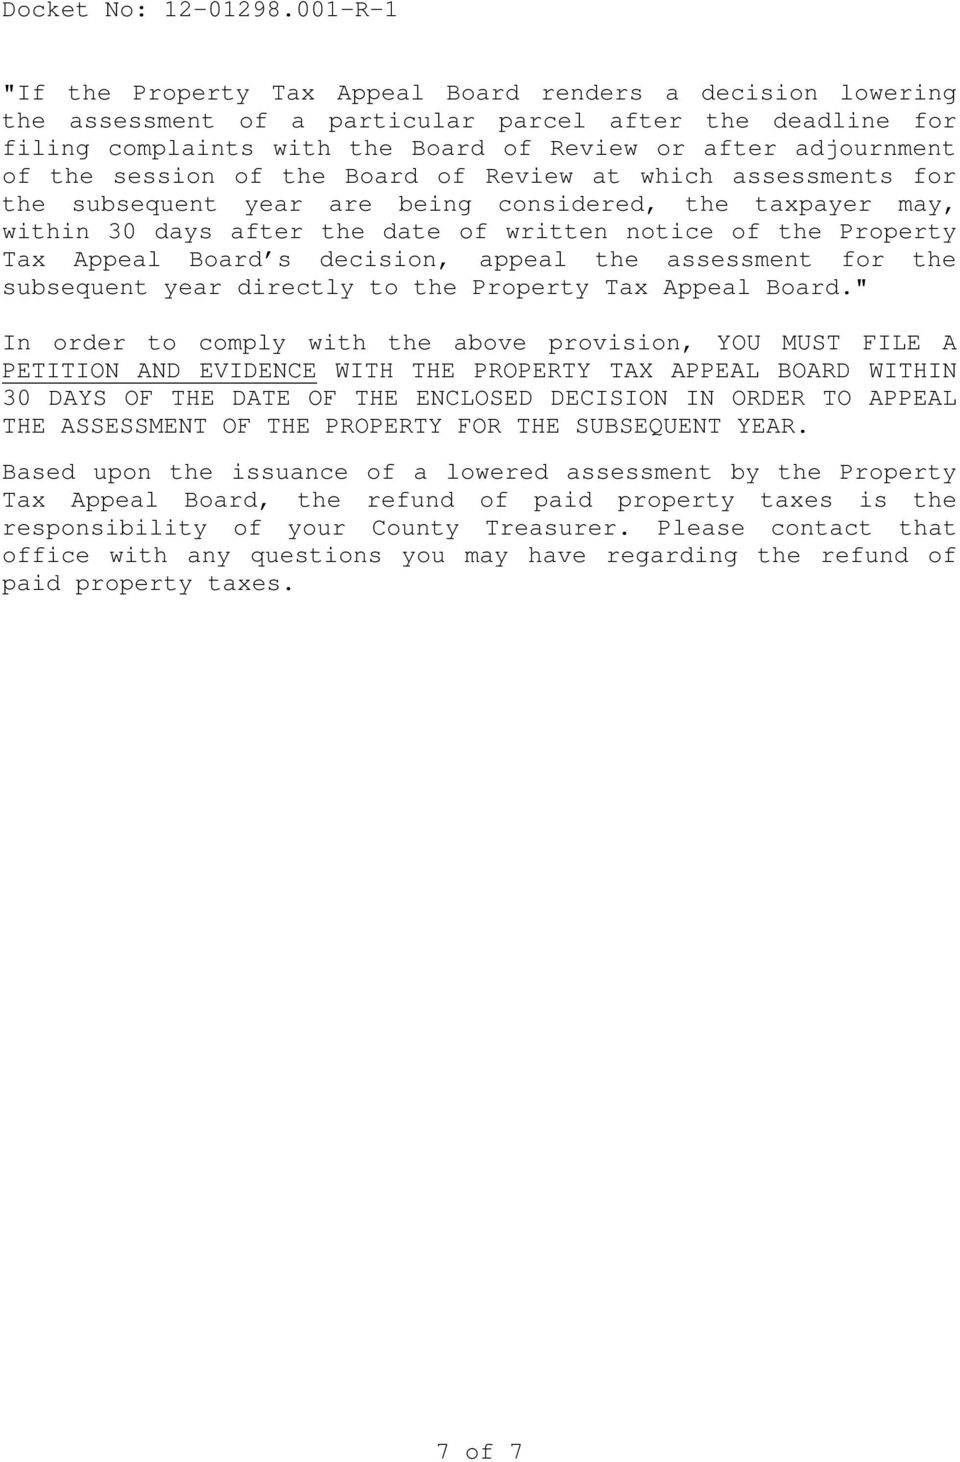 decision, appeal the assessment for the subsequent year directly to the Property Tax Appeal Board.